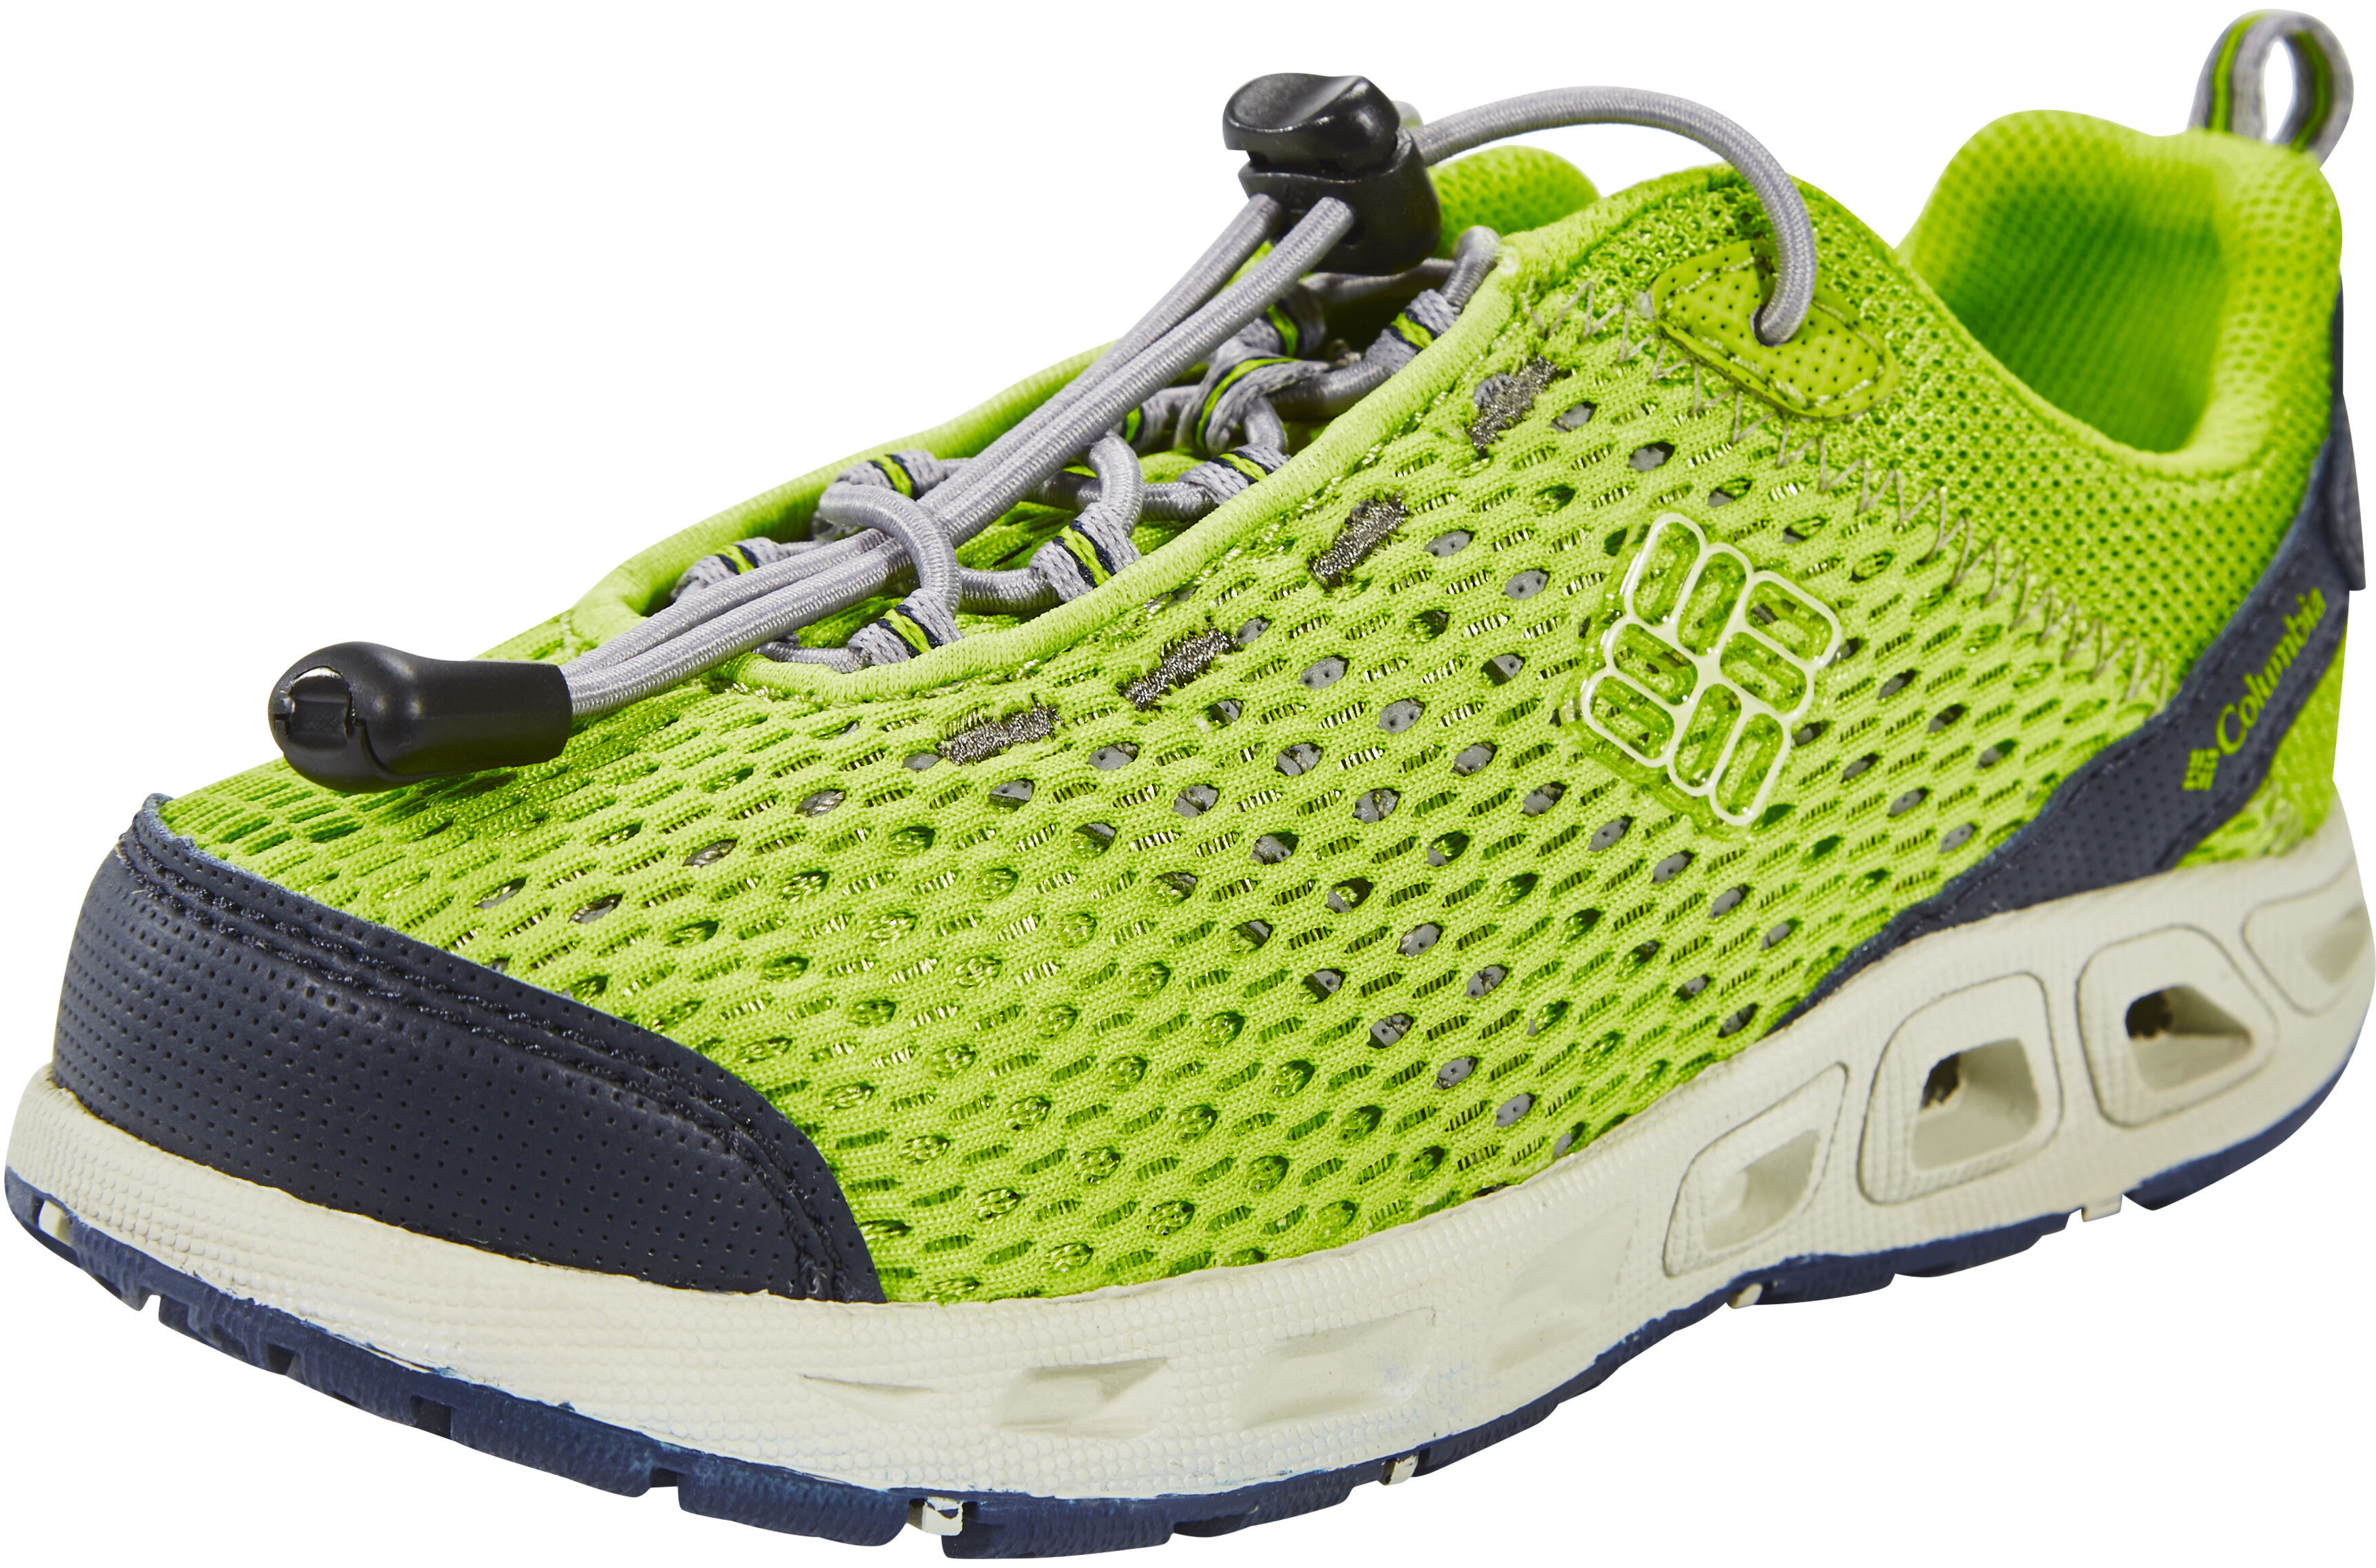 6c03211fb1b Columbia Drainmaker III Shoes Children green at Addnature.co.uk